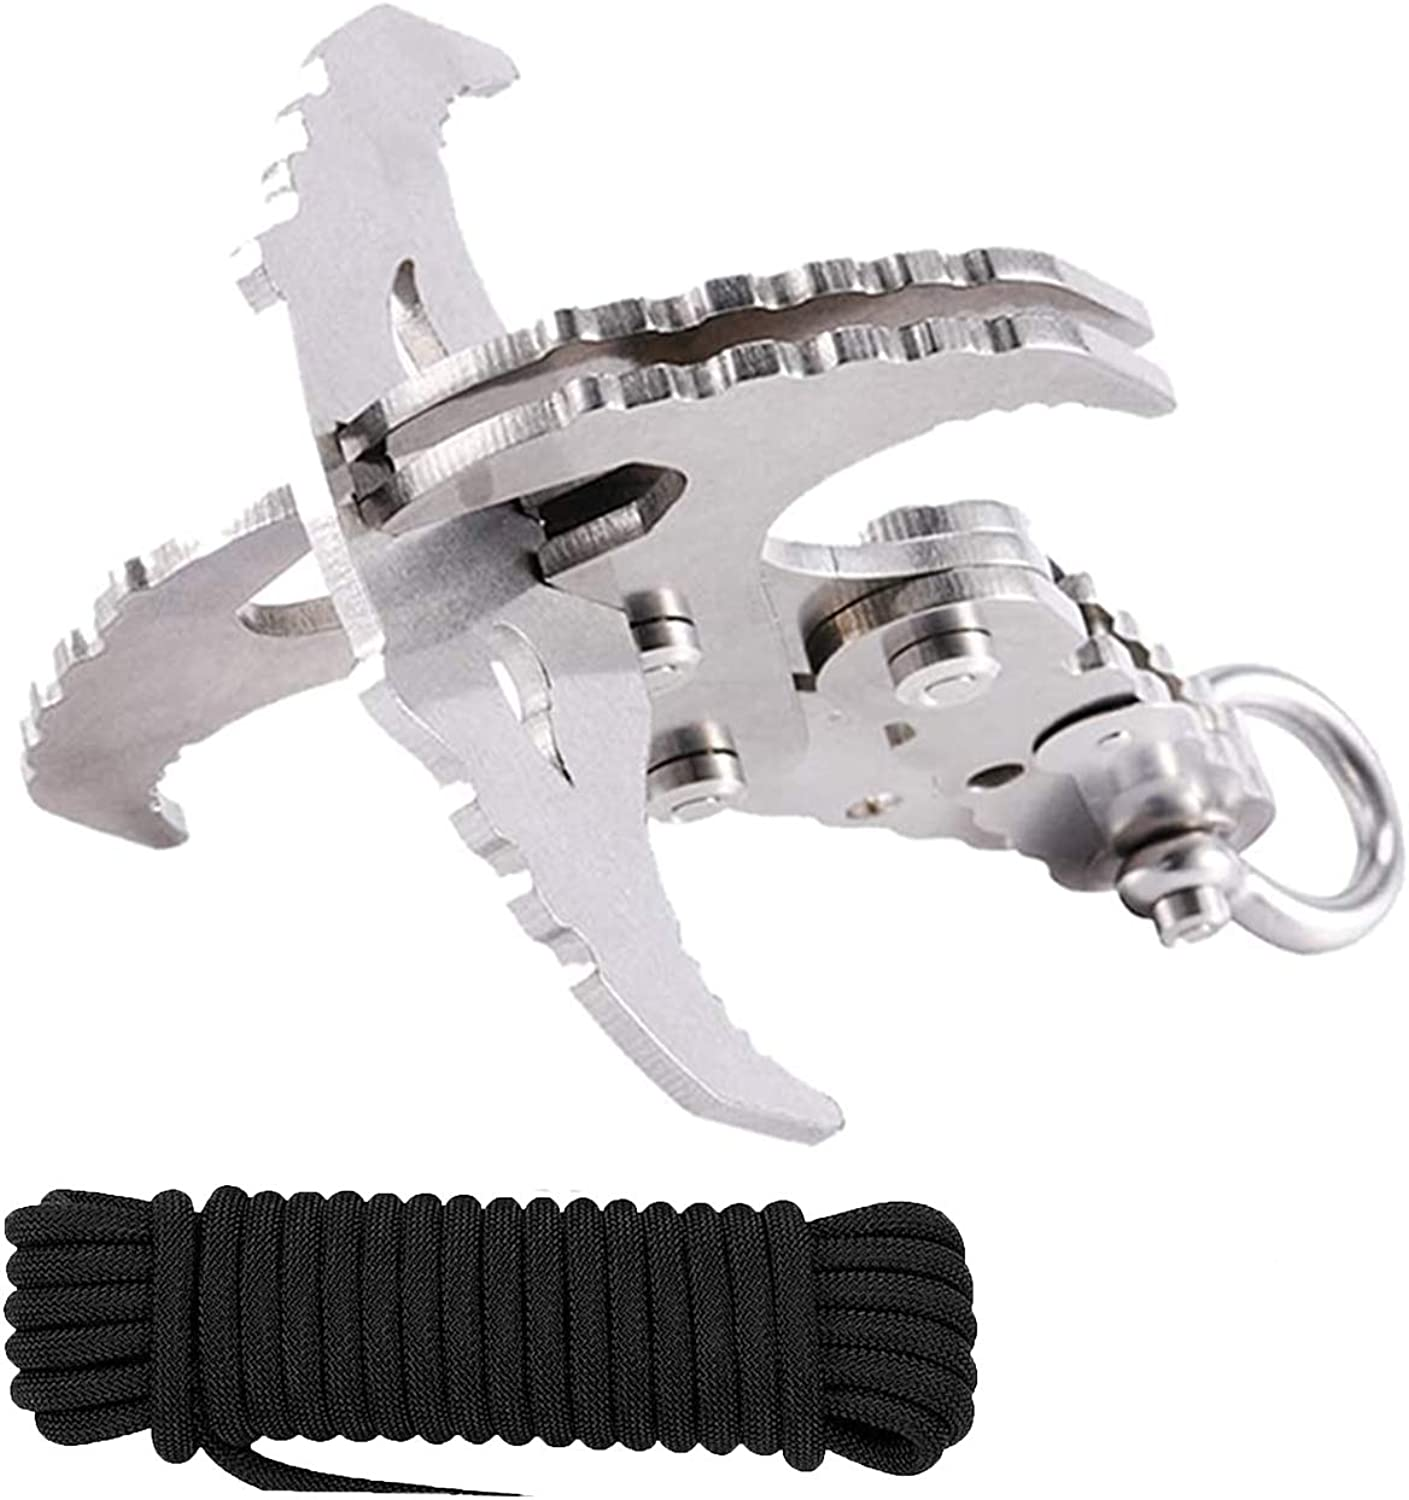 GearOZ Gravity Grappling Hook Popularity Claw Max 53% OFF Survival Hoo Folding